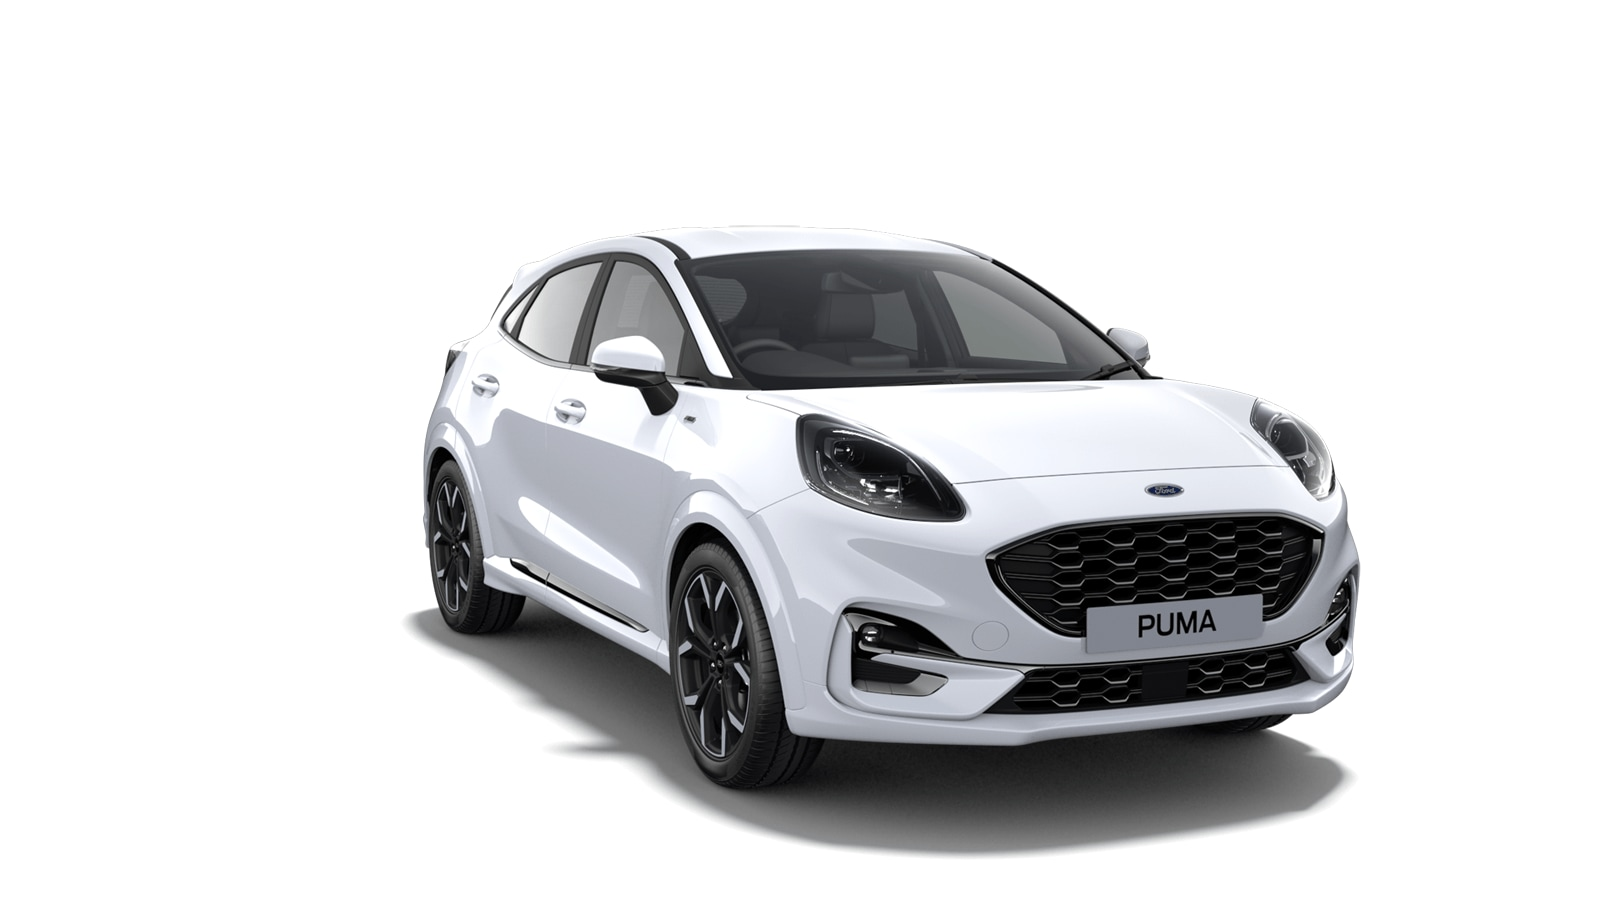 New Ford Puma at Balmoral Garage